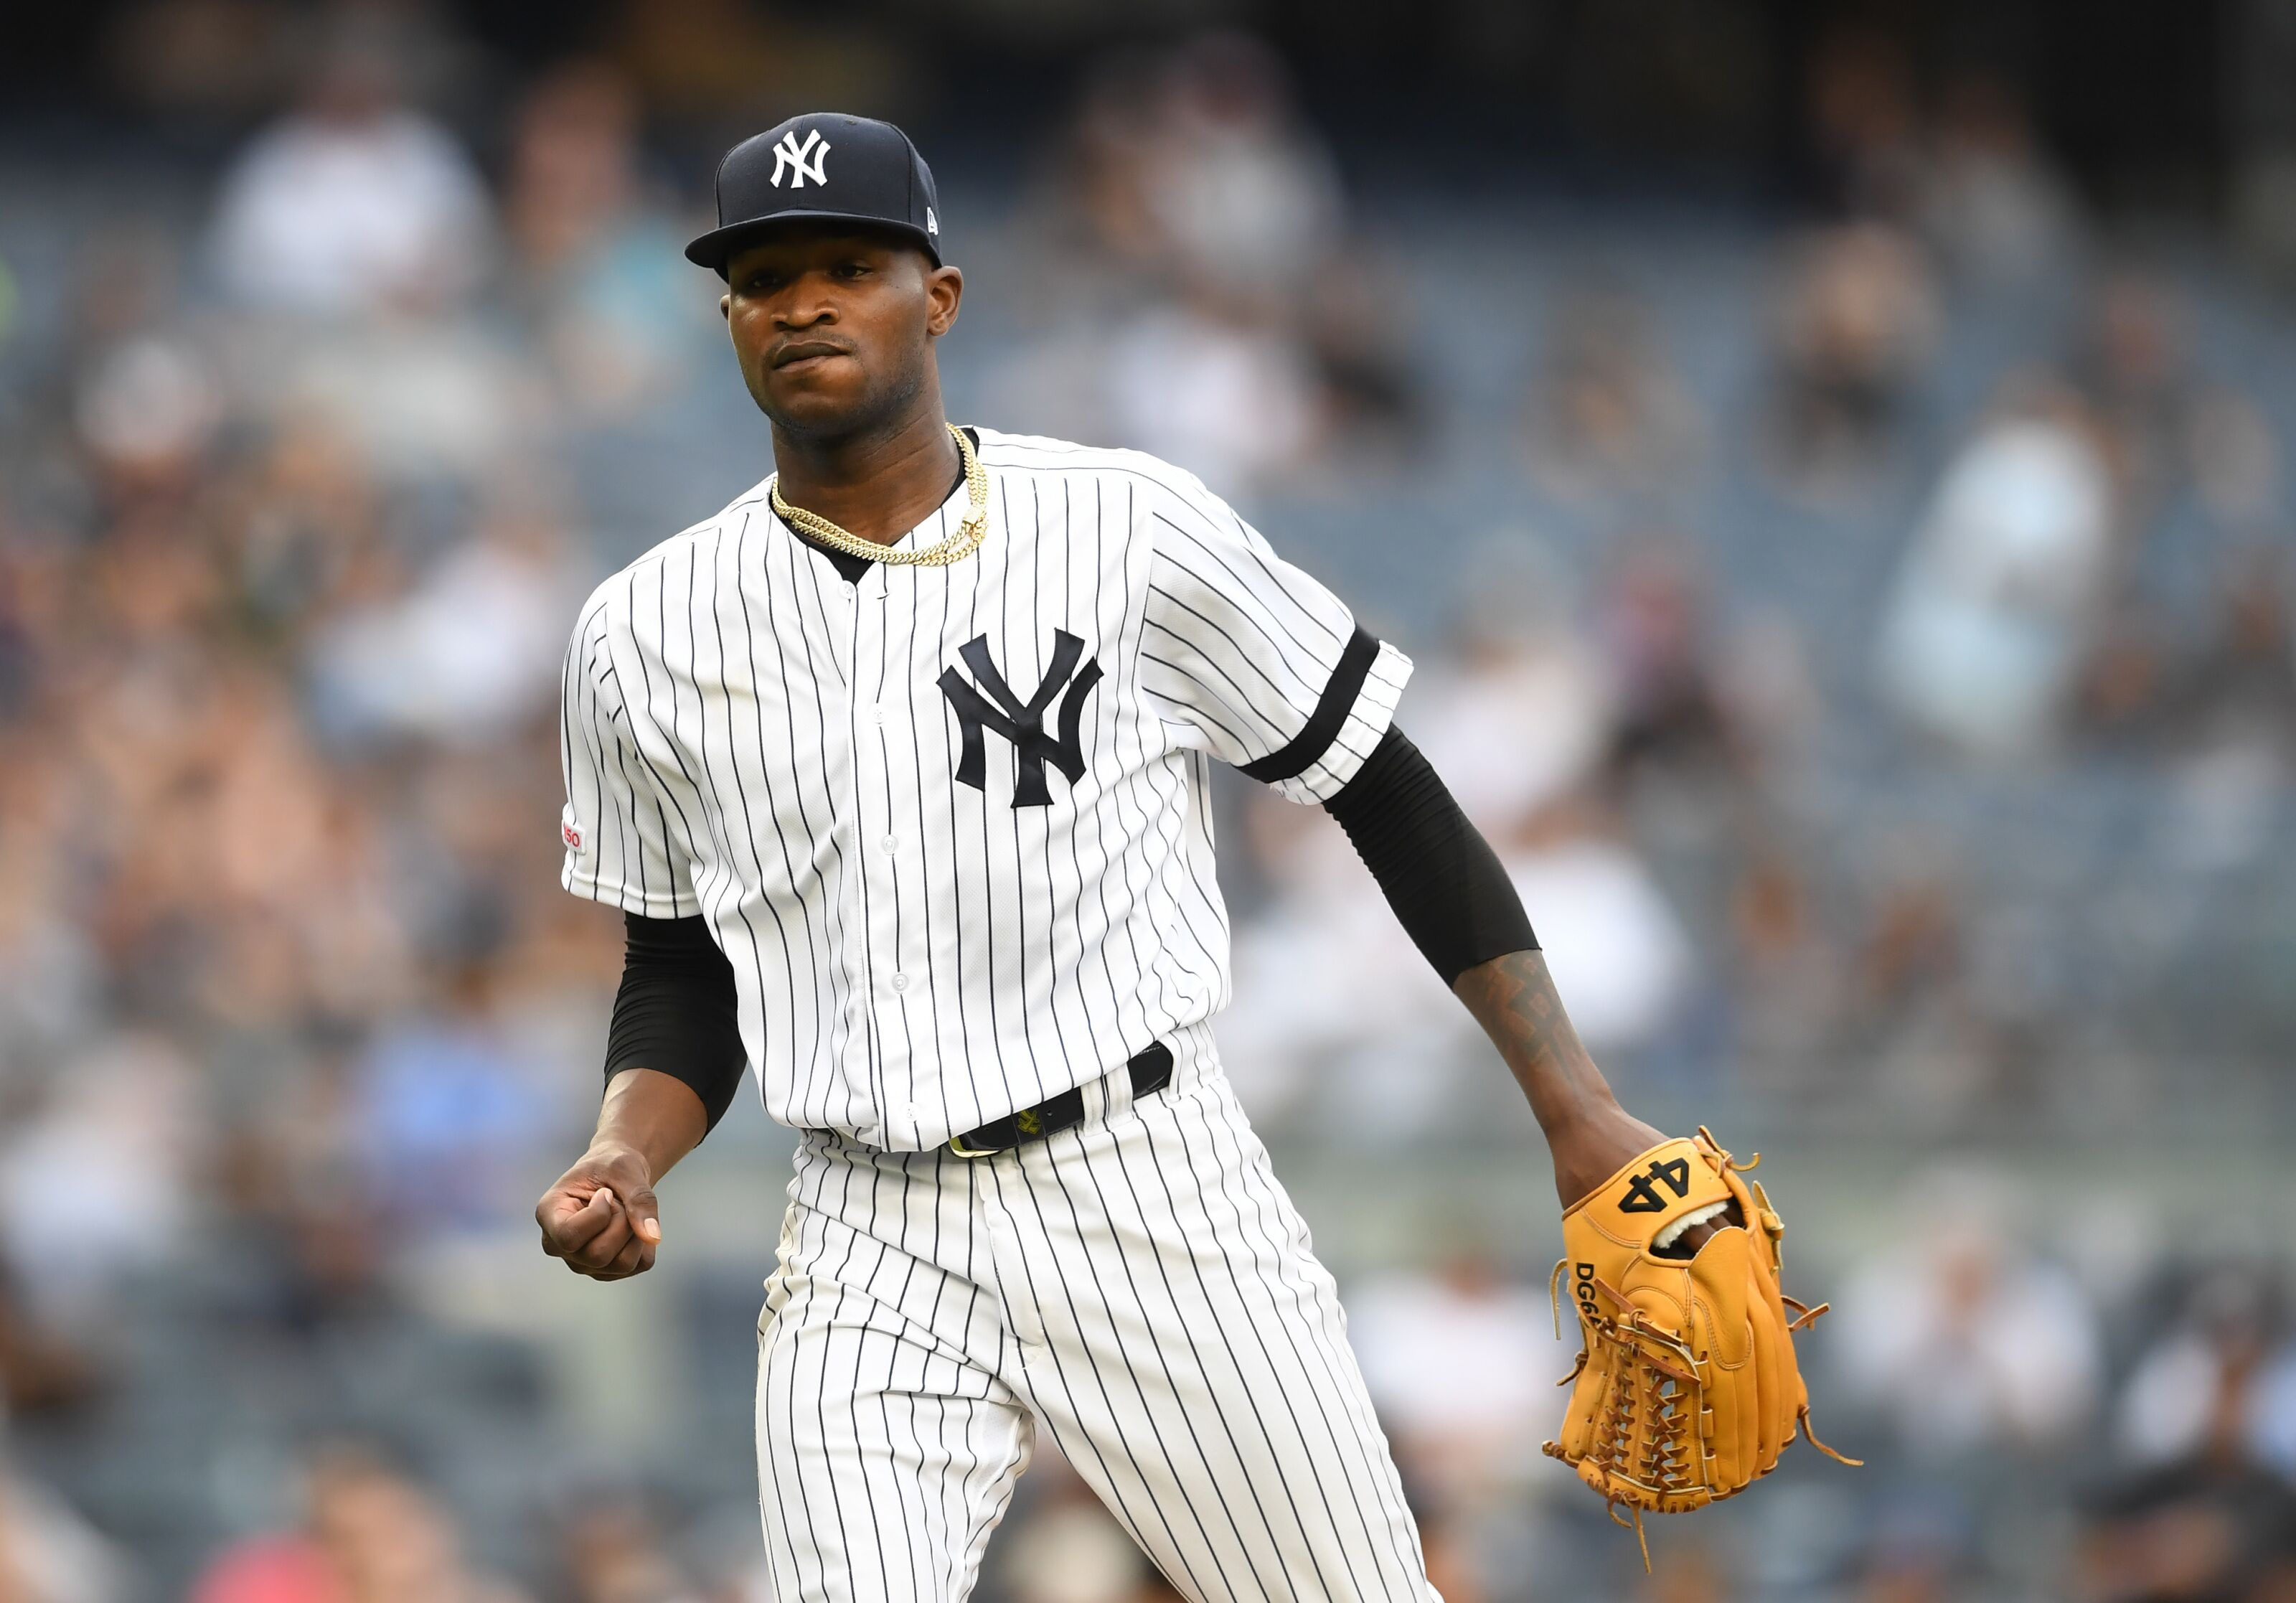 Yankees: Brian Cashman says Domingo German won't have an innings limit